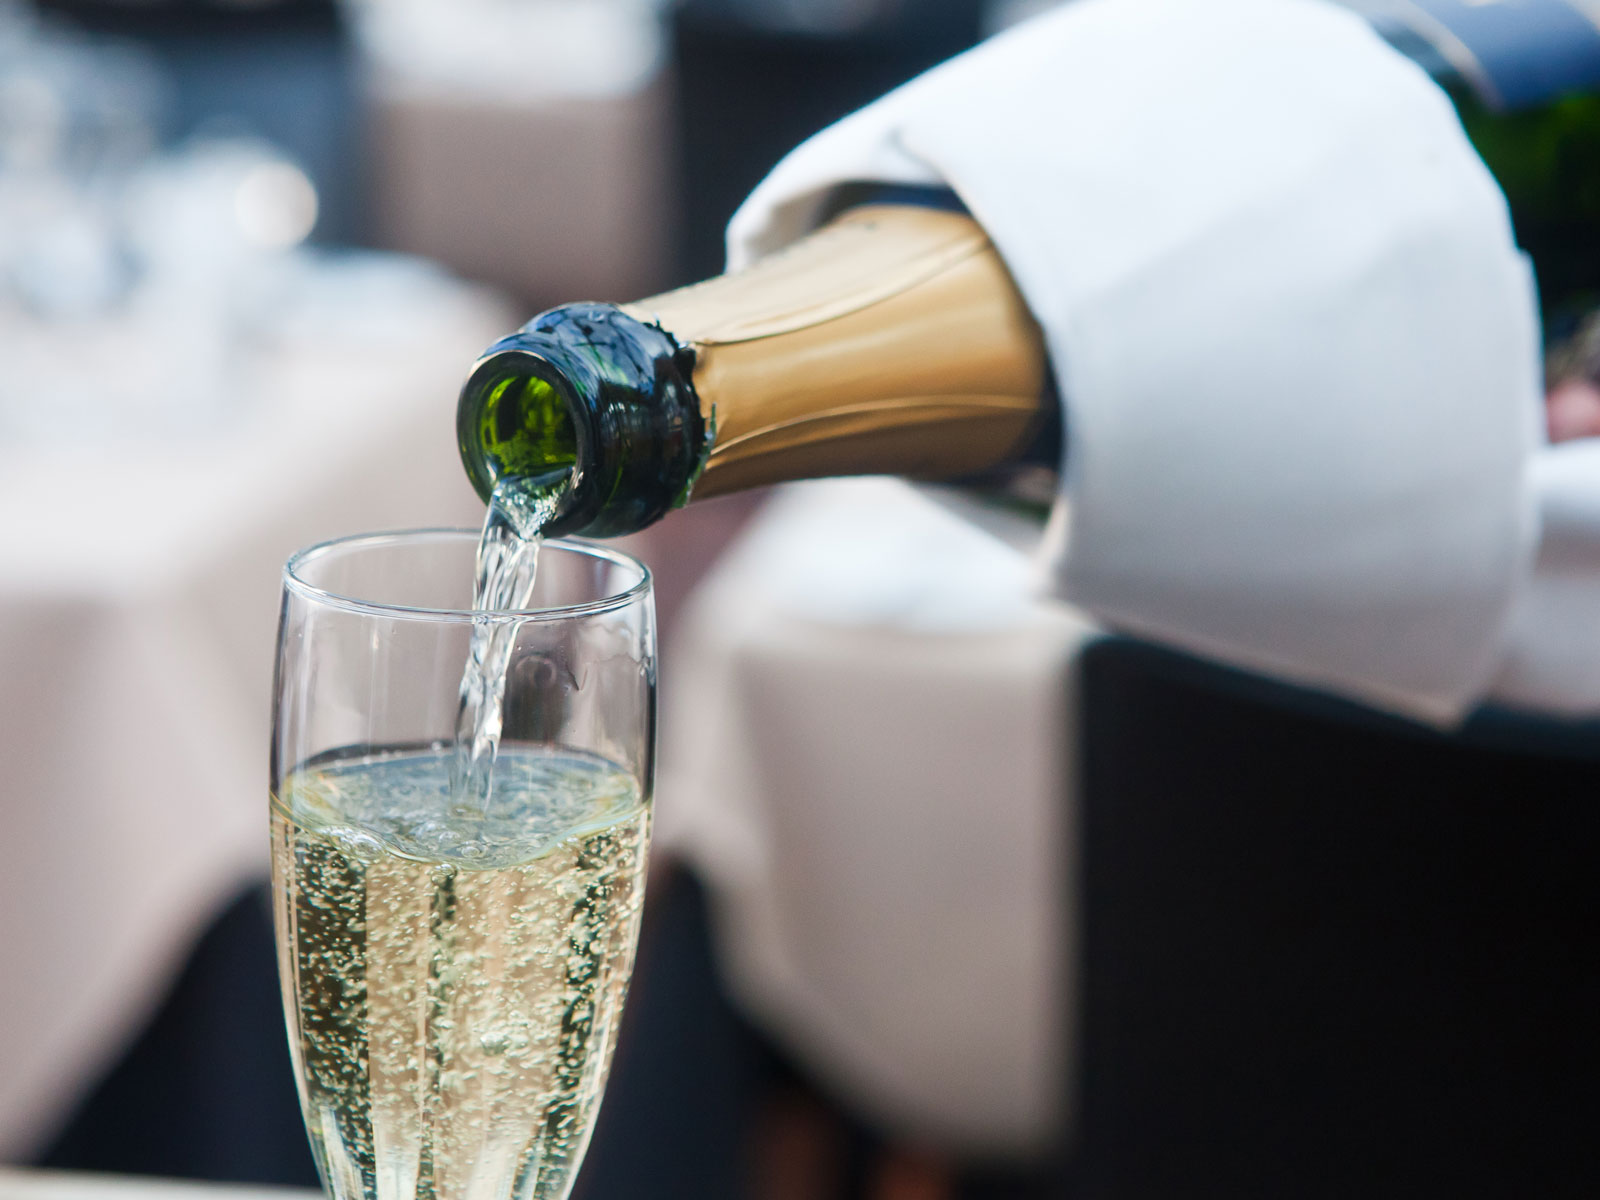 108-Year-Old Says Champagne Is the Secret to Her Longevity